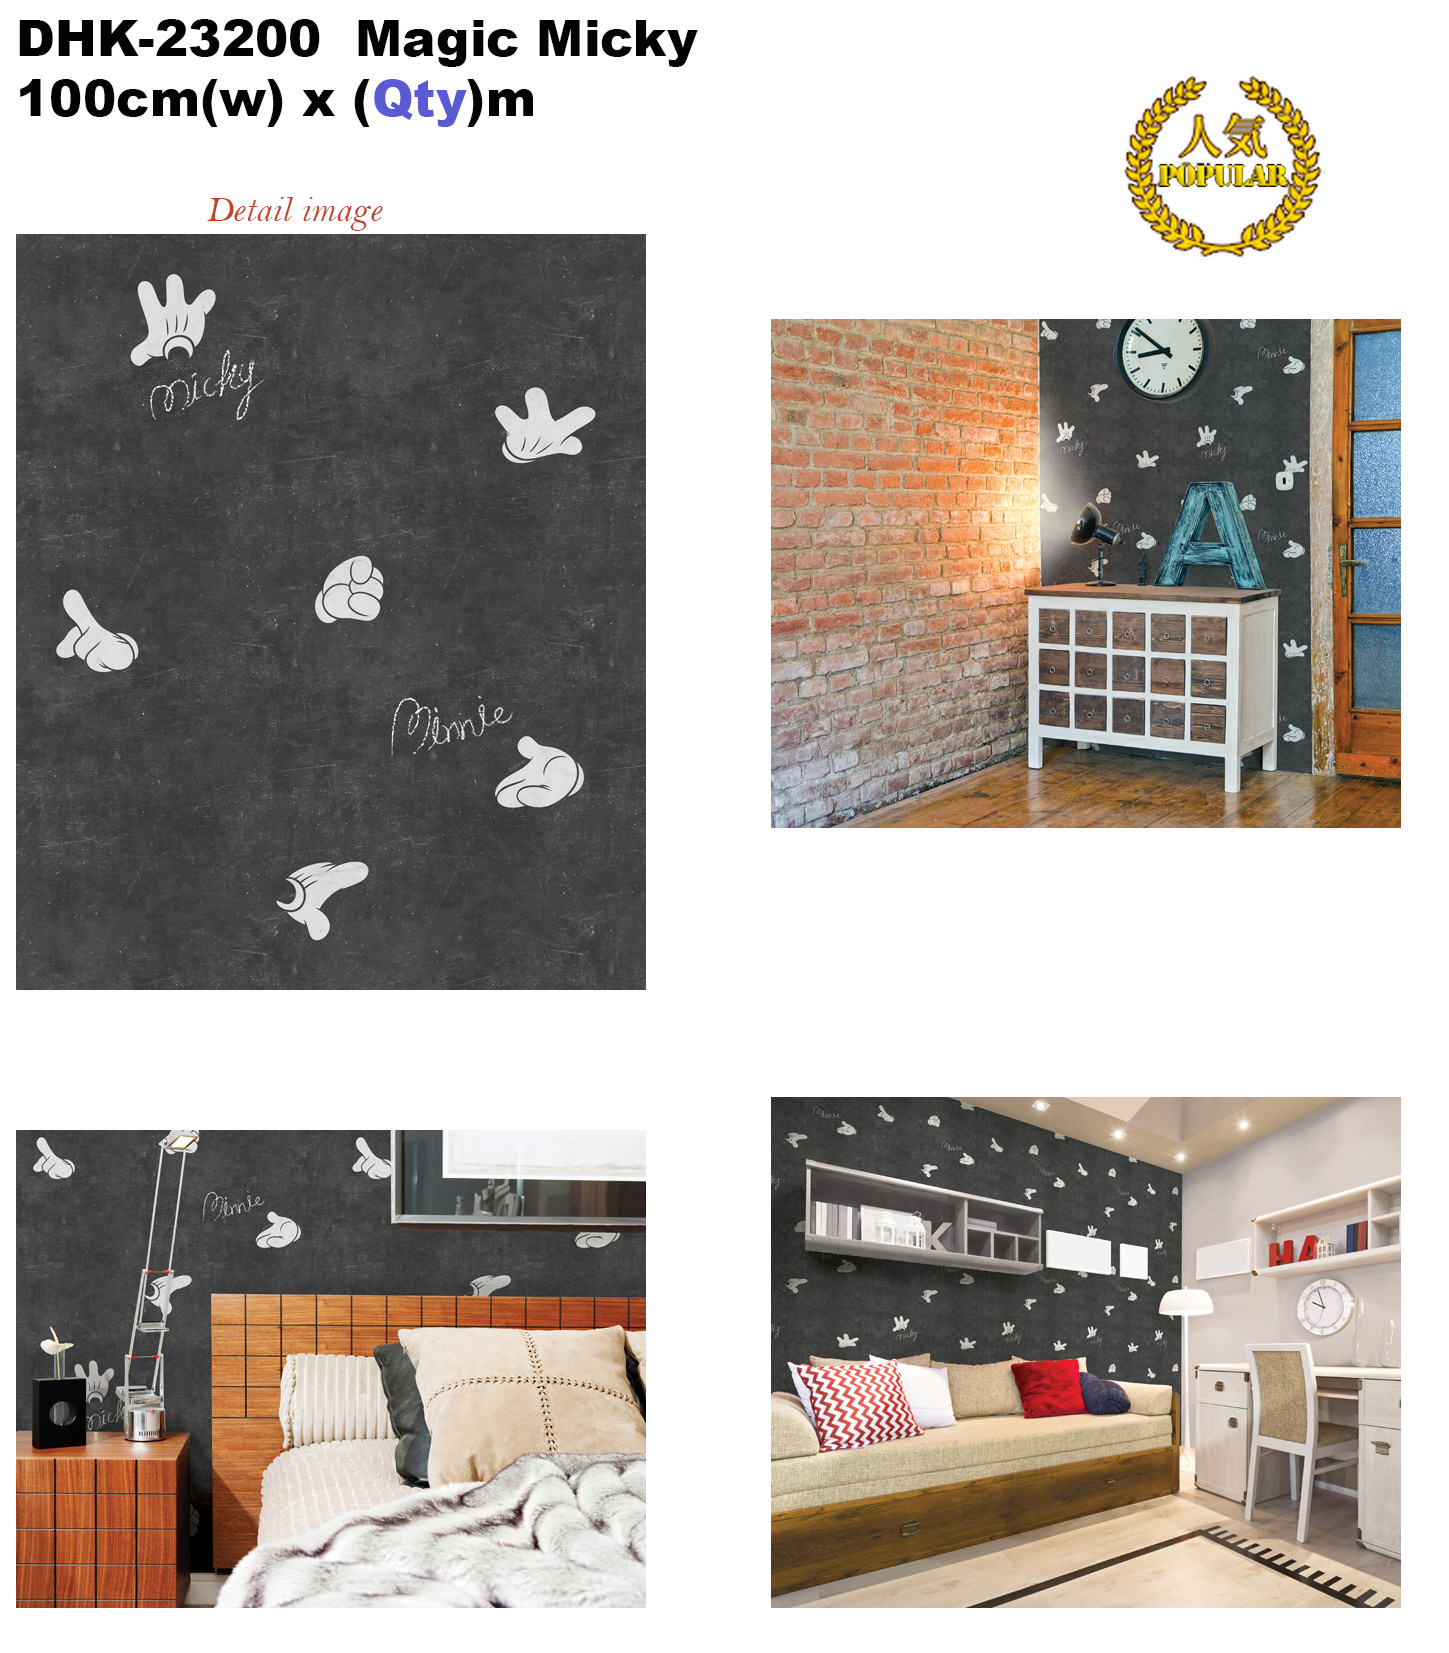 Wallpaper PAGE1 Self Adhesive home decoration living DIY  : bf09a5ad 4e7c 4a8e 9e0e f38511611506 Ergonomic Chair <strong>Design</strong> from www.juzdeals.com size 1449 x 1653 jpeg 639kB